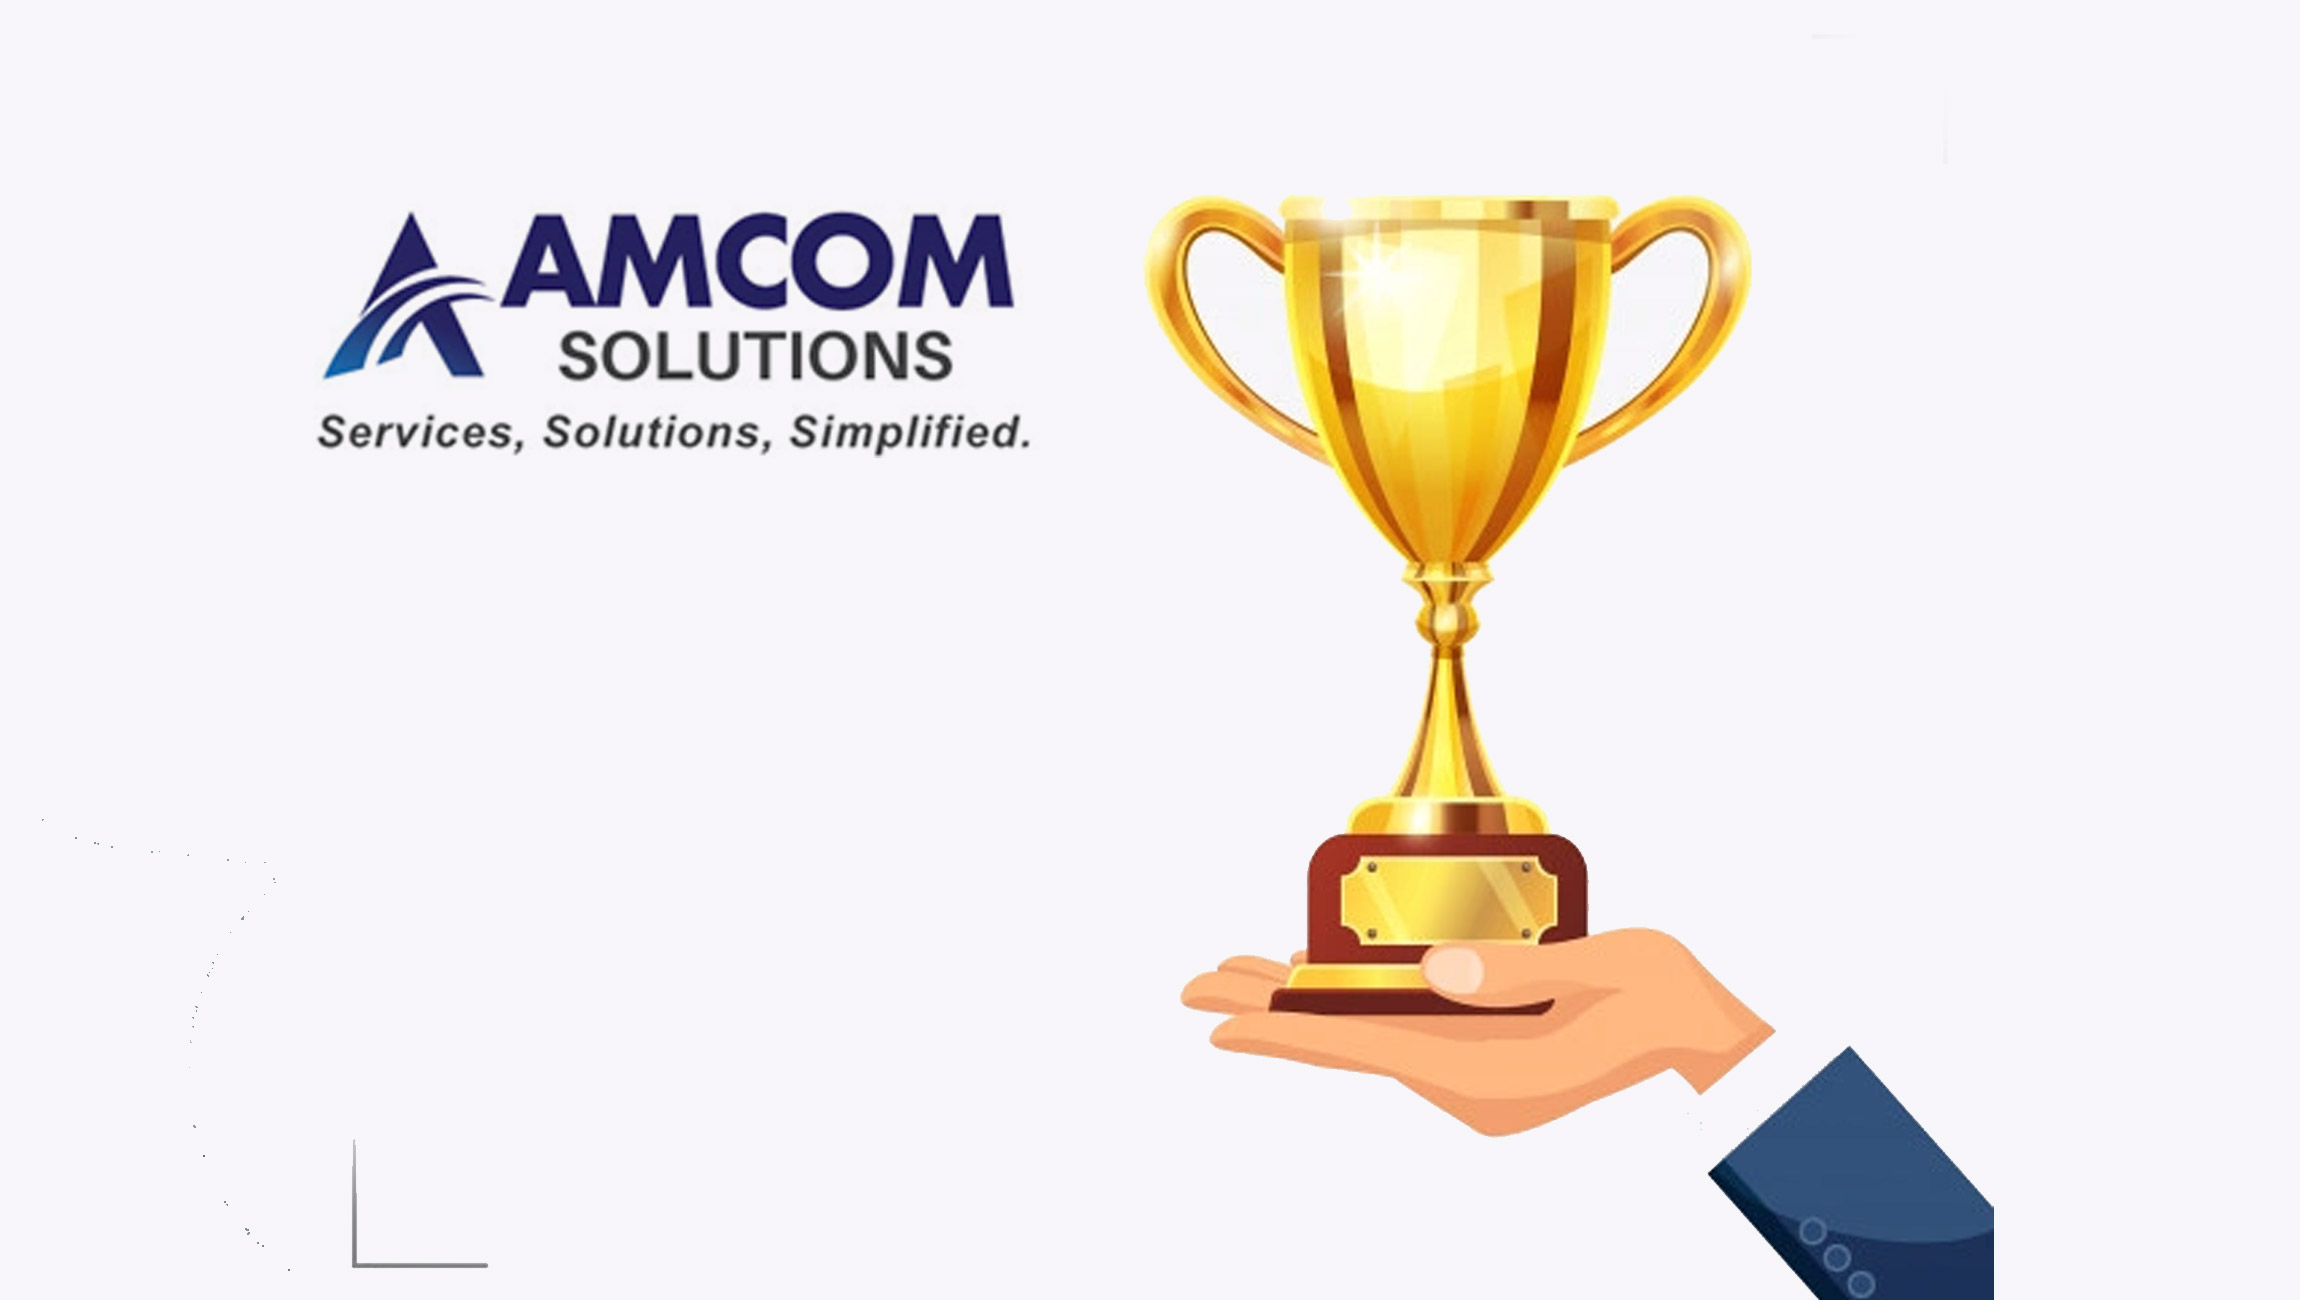 AmCom-Solutions-Wins-2021-Visionary-Spotlight-Award-for-Overall-Excellence-in-Channel-Deployments-of-the-Year